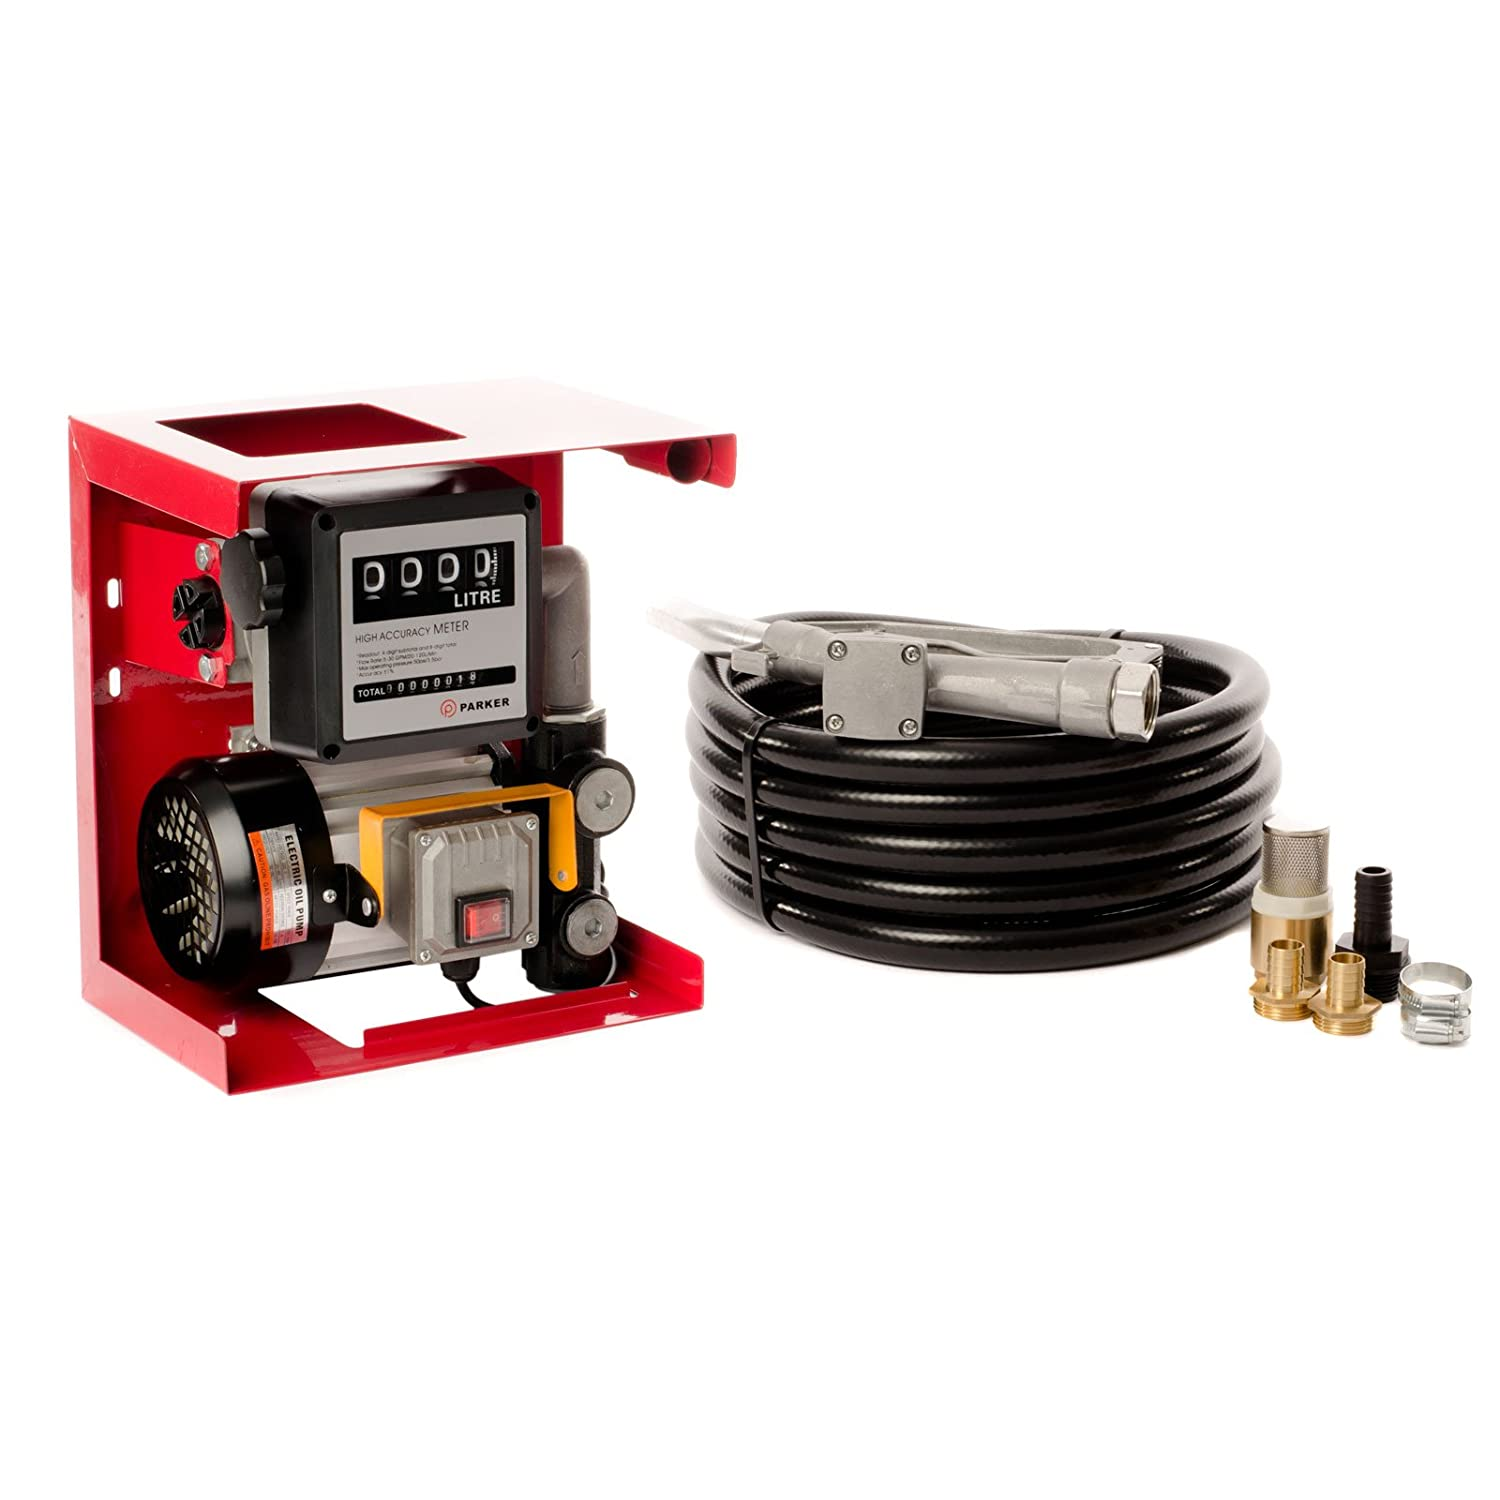 Parker 230V Wall Mounted Diesel Transfer Fuel Pump Kit - With Fuel Meter